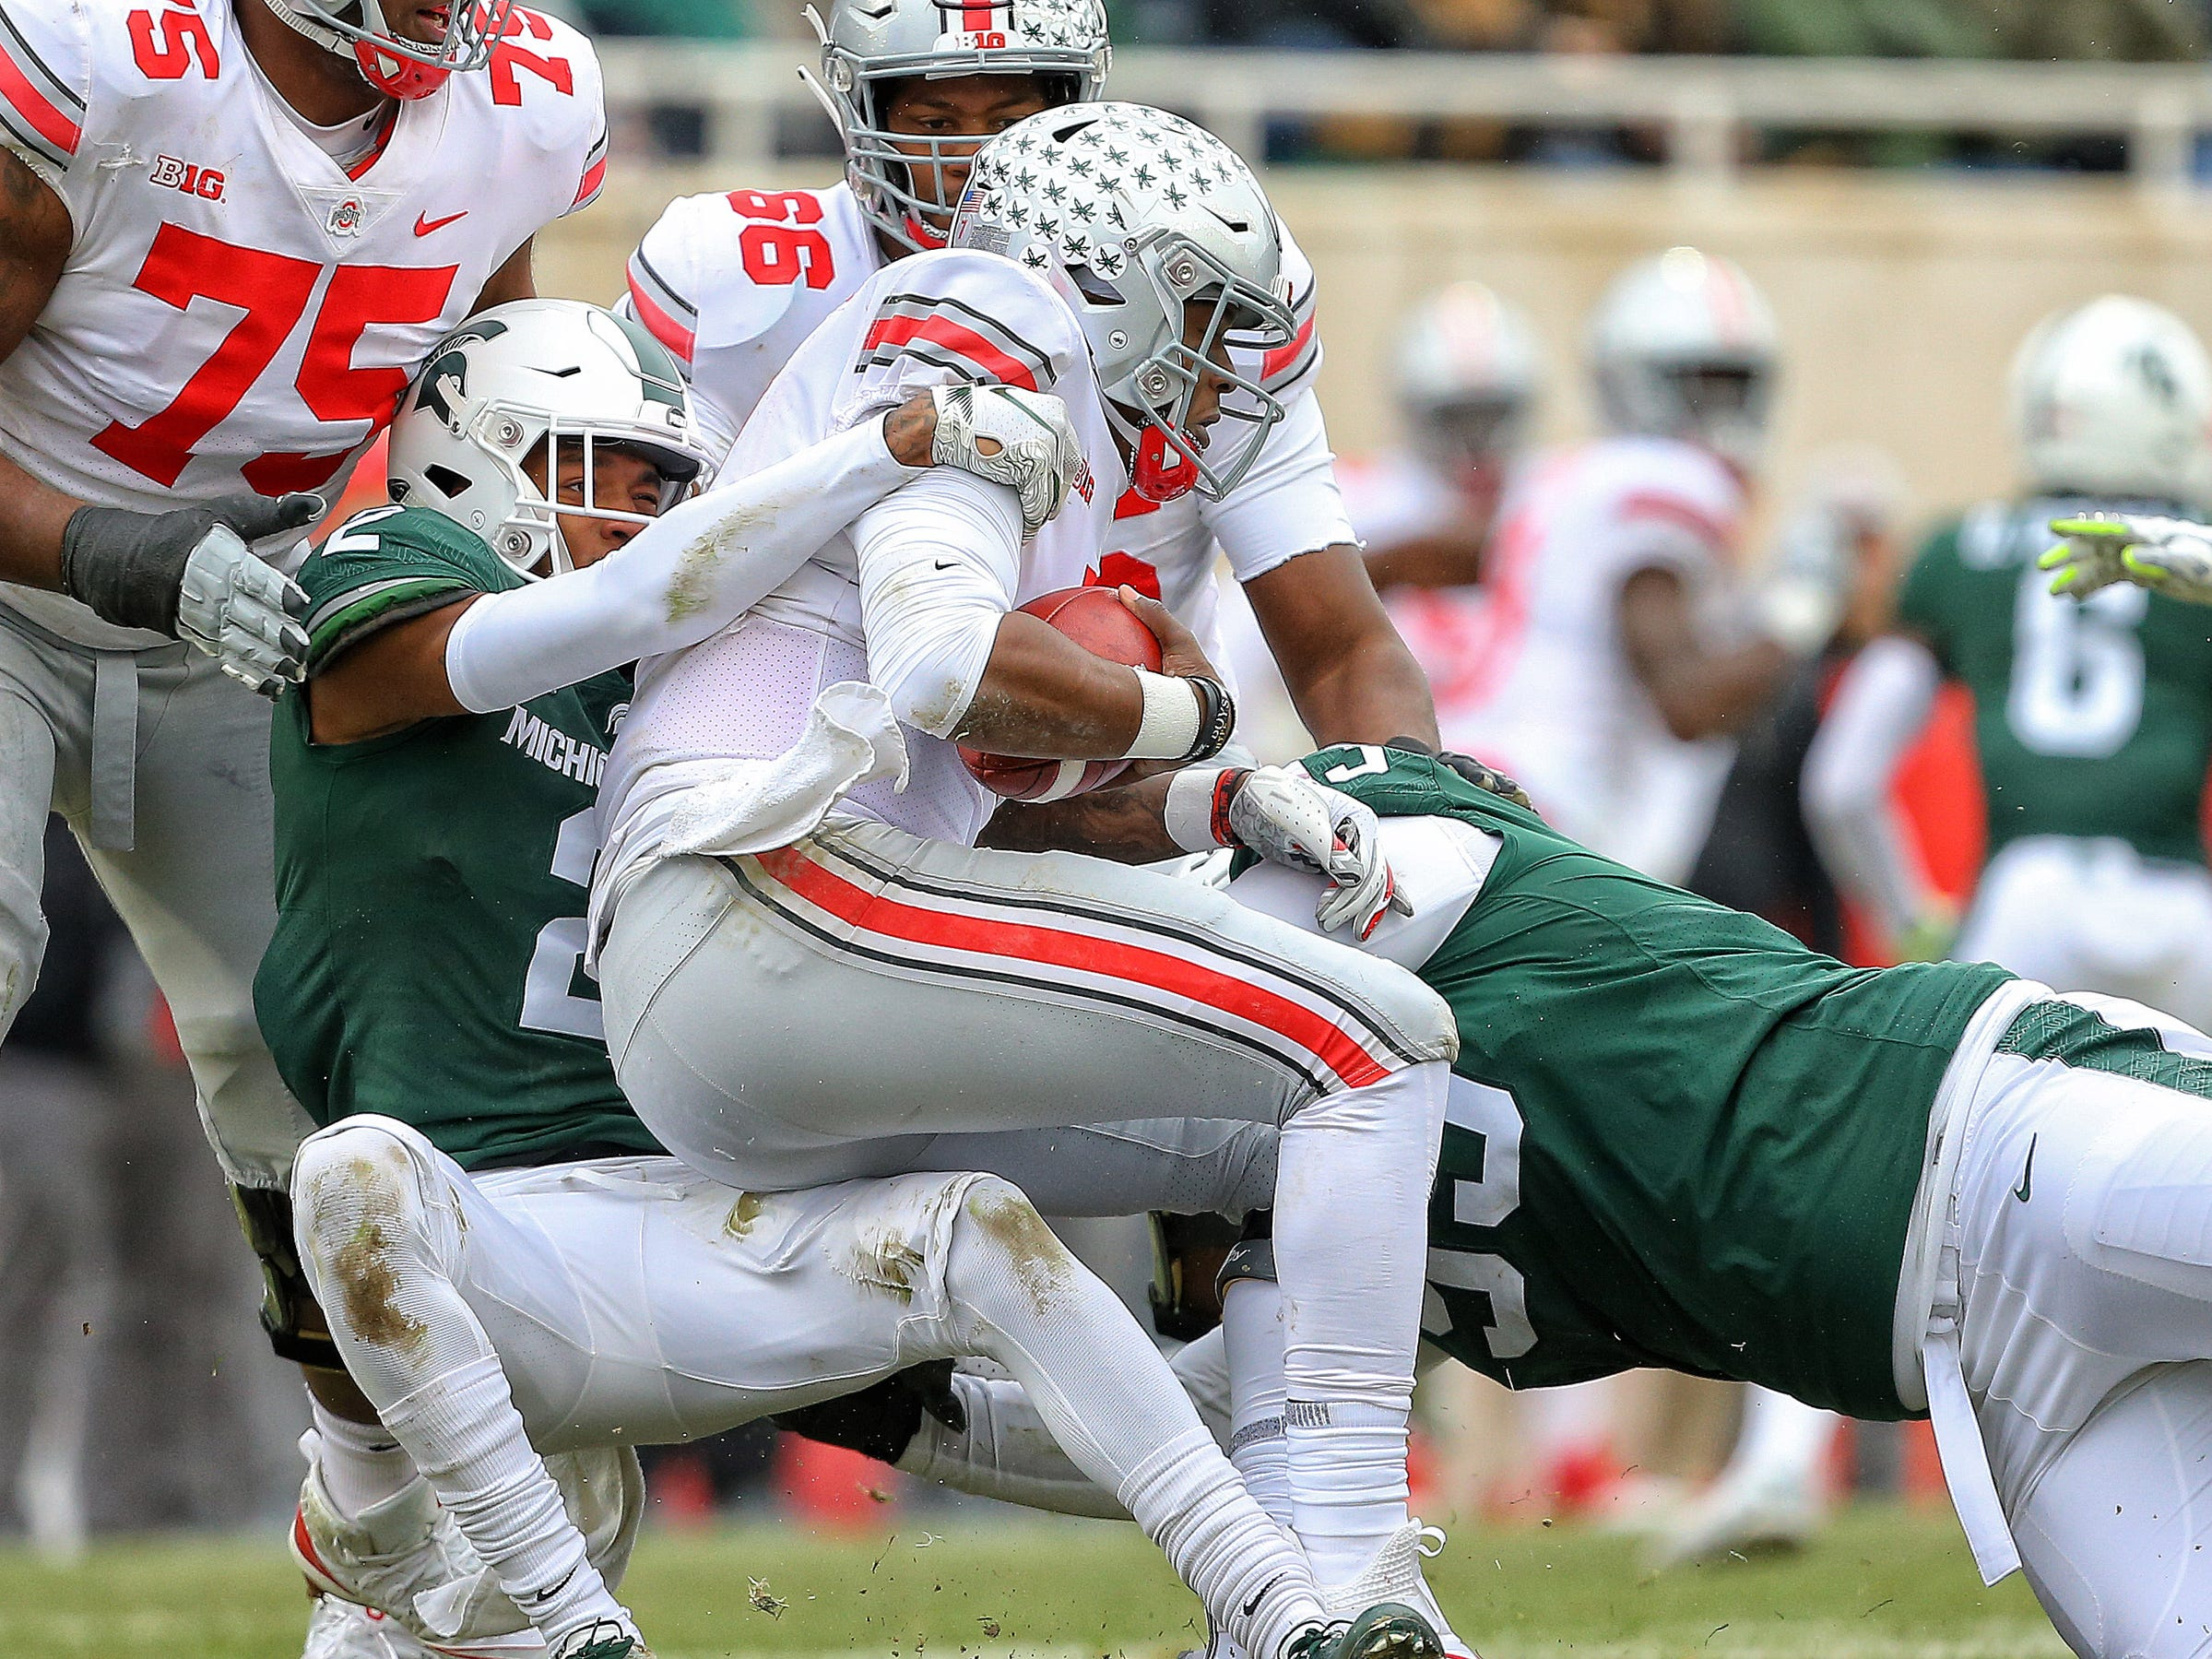 Michigan State botched a lot vs. Ohio State, including Rose Bowl chance